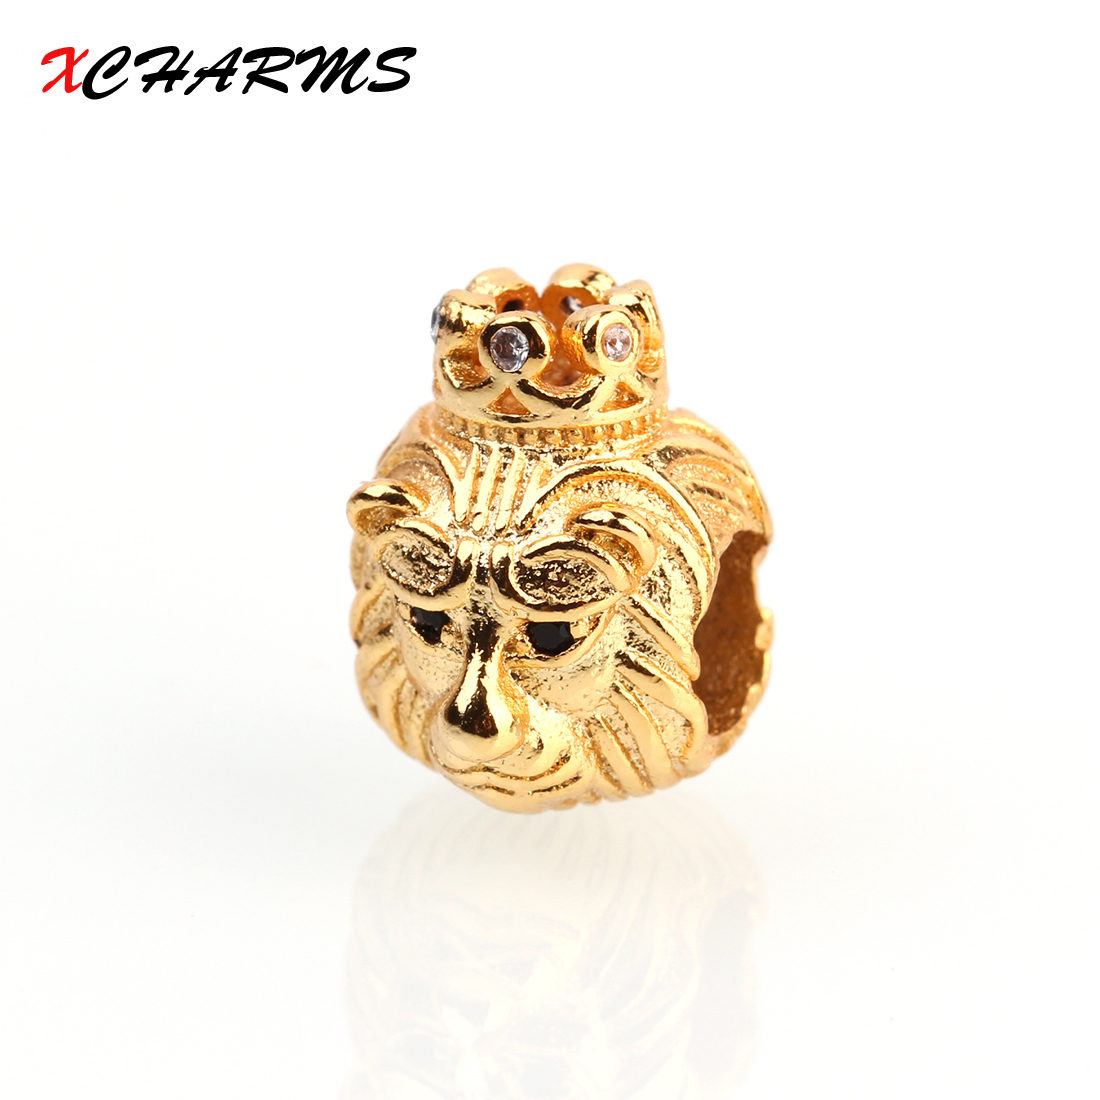 XCHARMS 13*10mm Black CZ Lion head Spacer Beads Diy Copper Beads for Bracelets Jewlery Making Materials Findings Wholesale